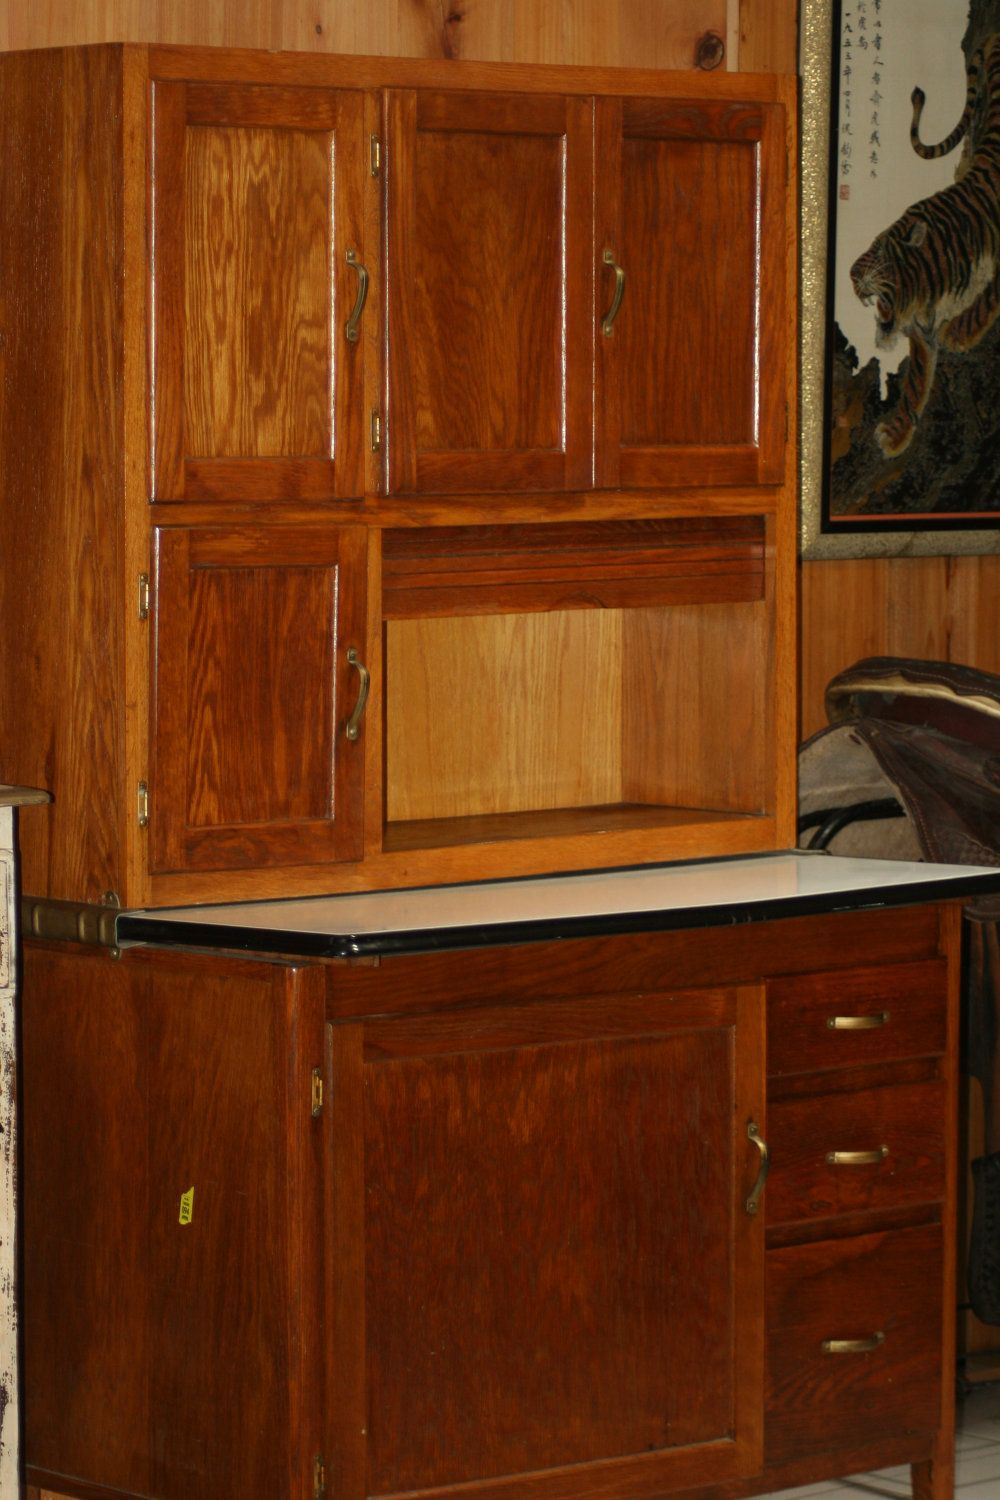 Antique Kitchen Chest Bakers Hutch By Magitoes On Etsy, $2,000.00